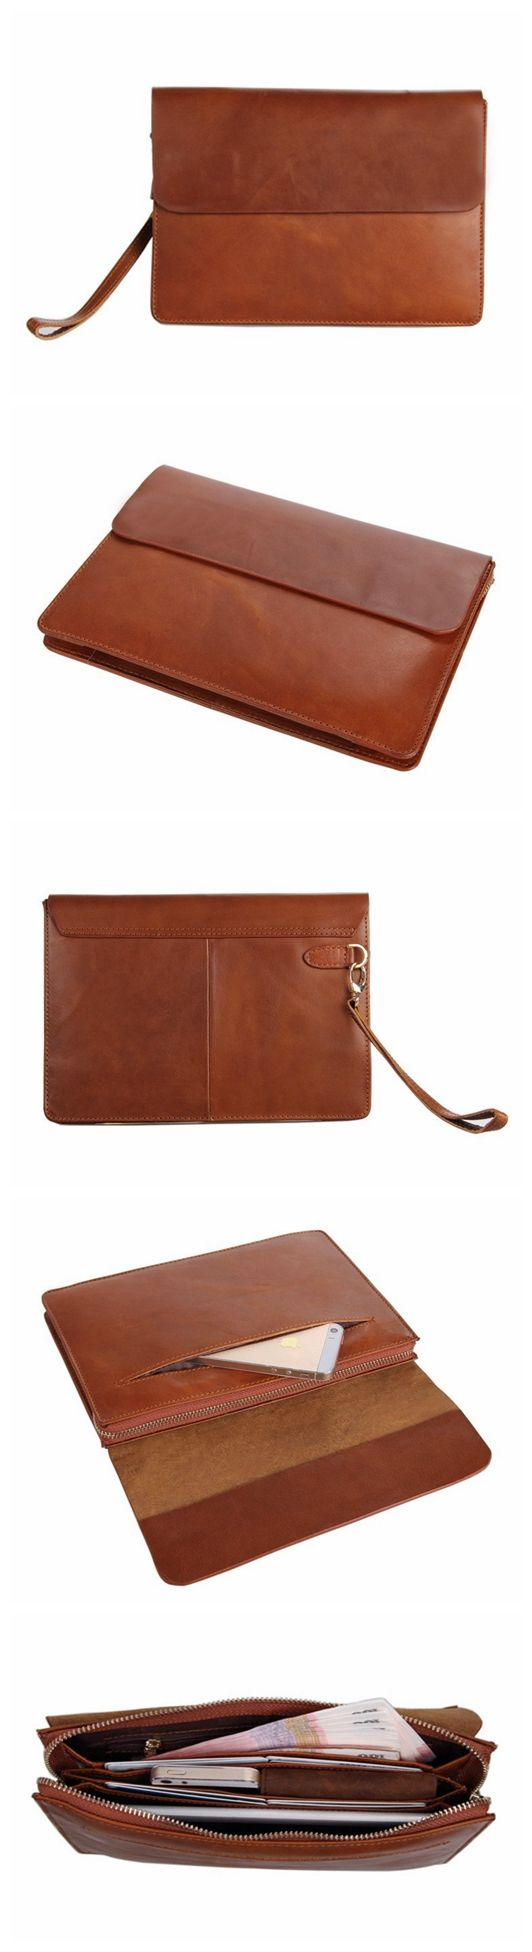 Handmade Genuine Leather Men Clutch Bag, Leather Wallet